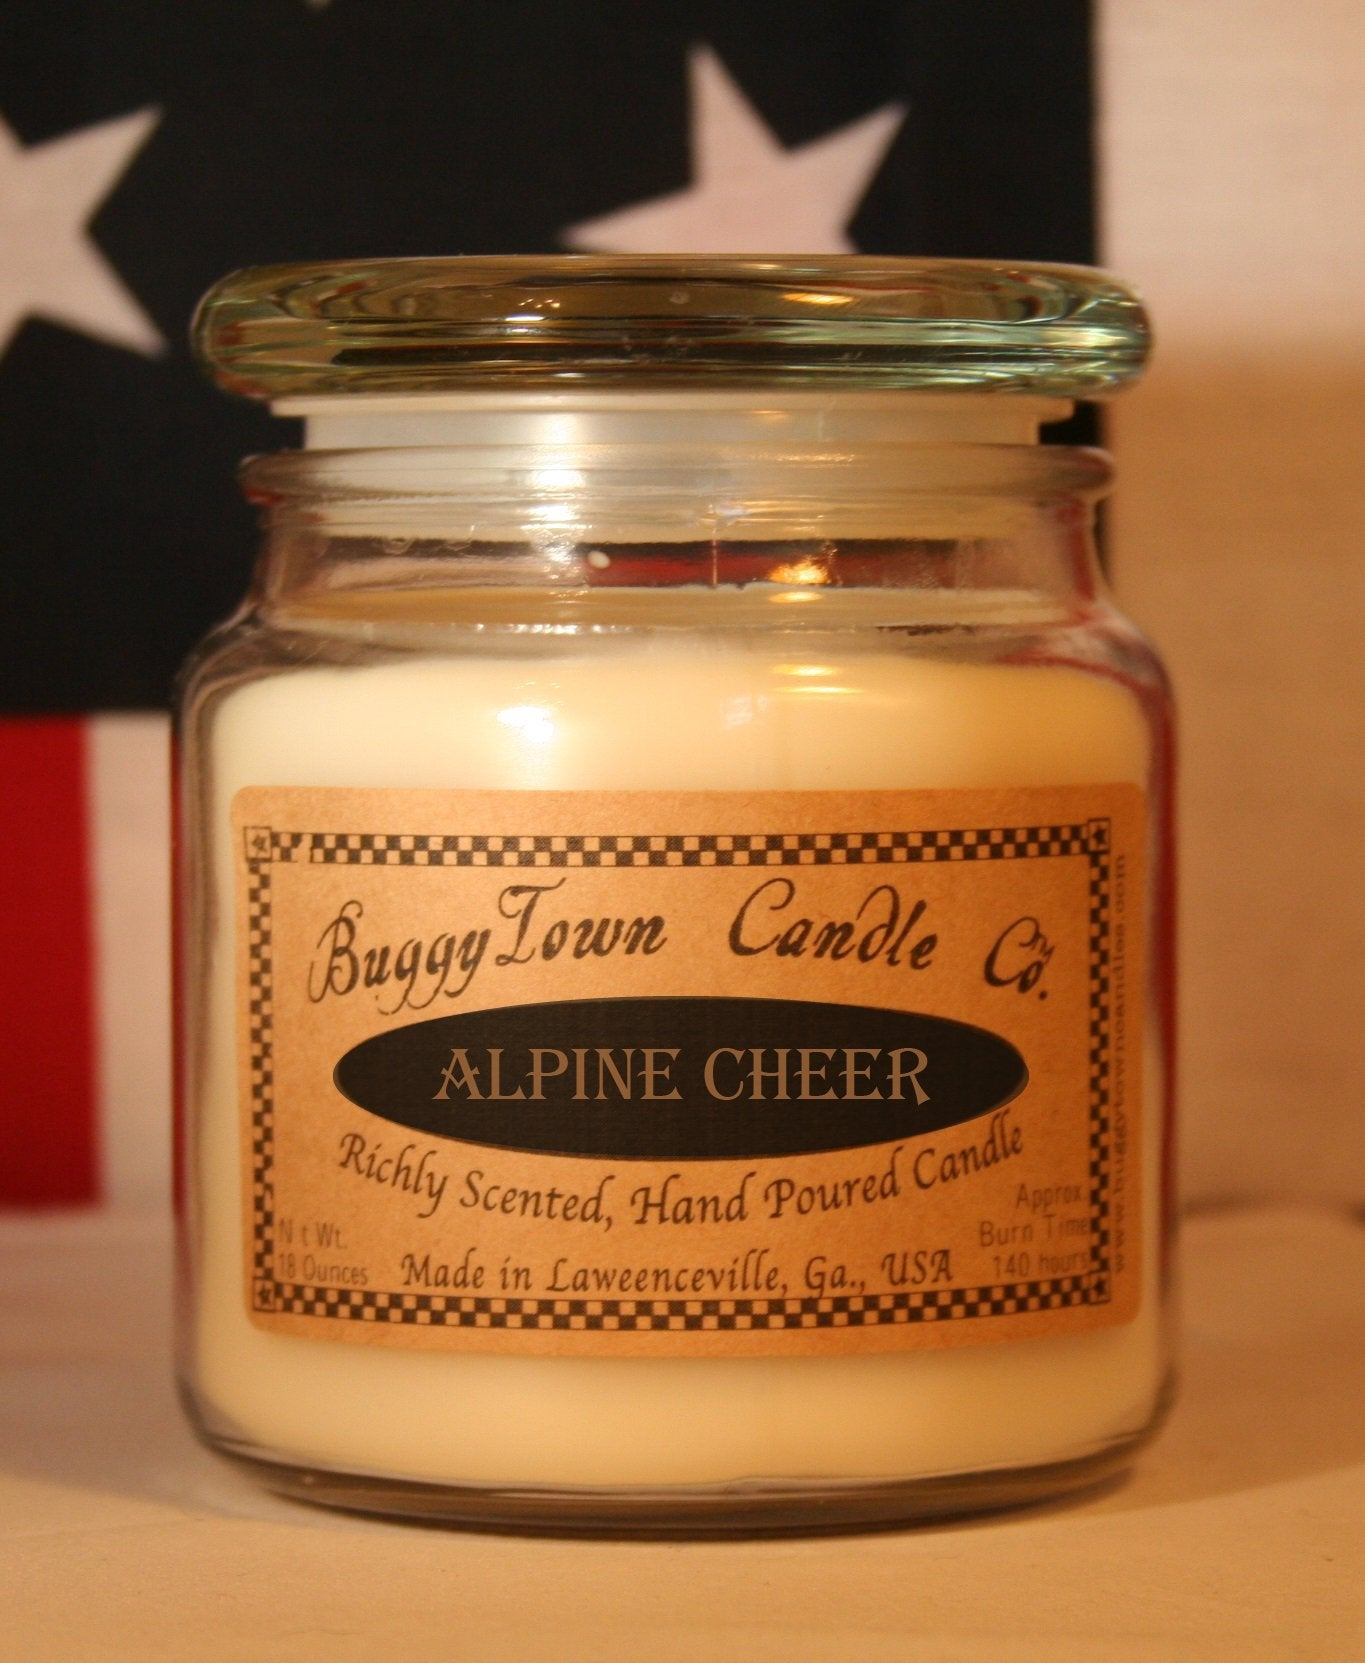 Alpine Cheer (BBW®) Candles